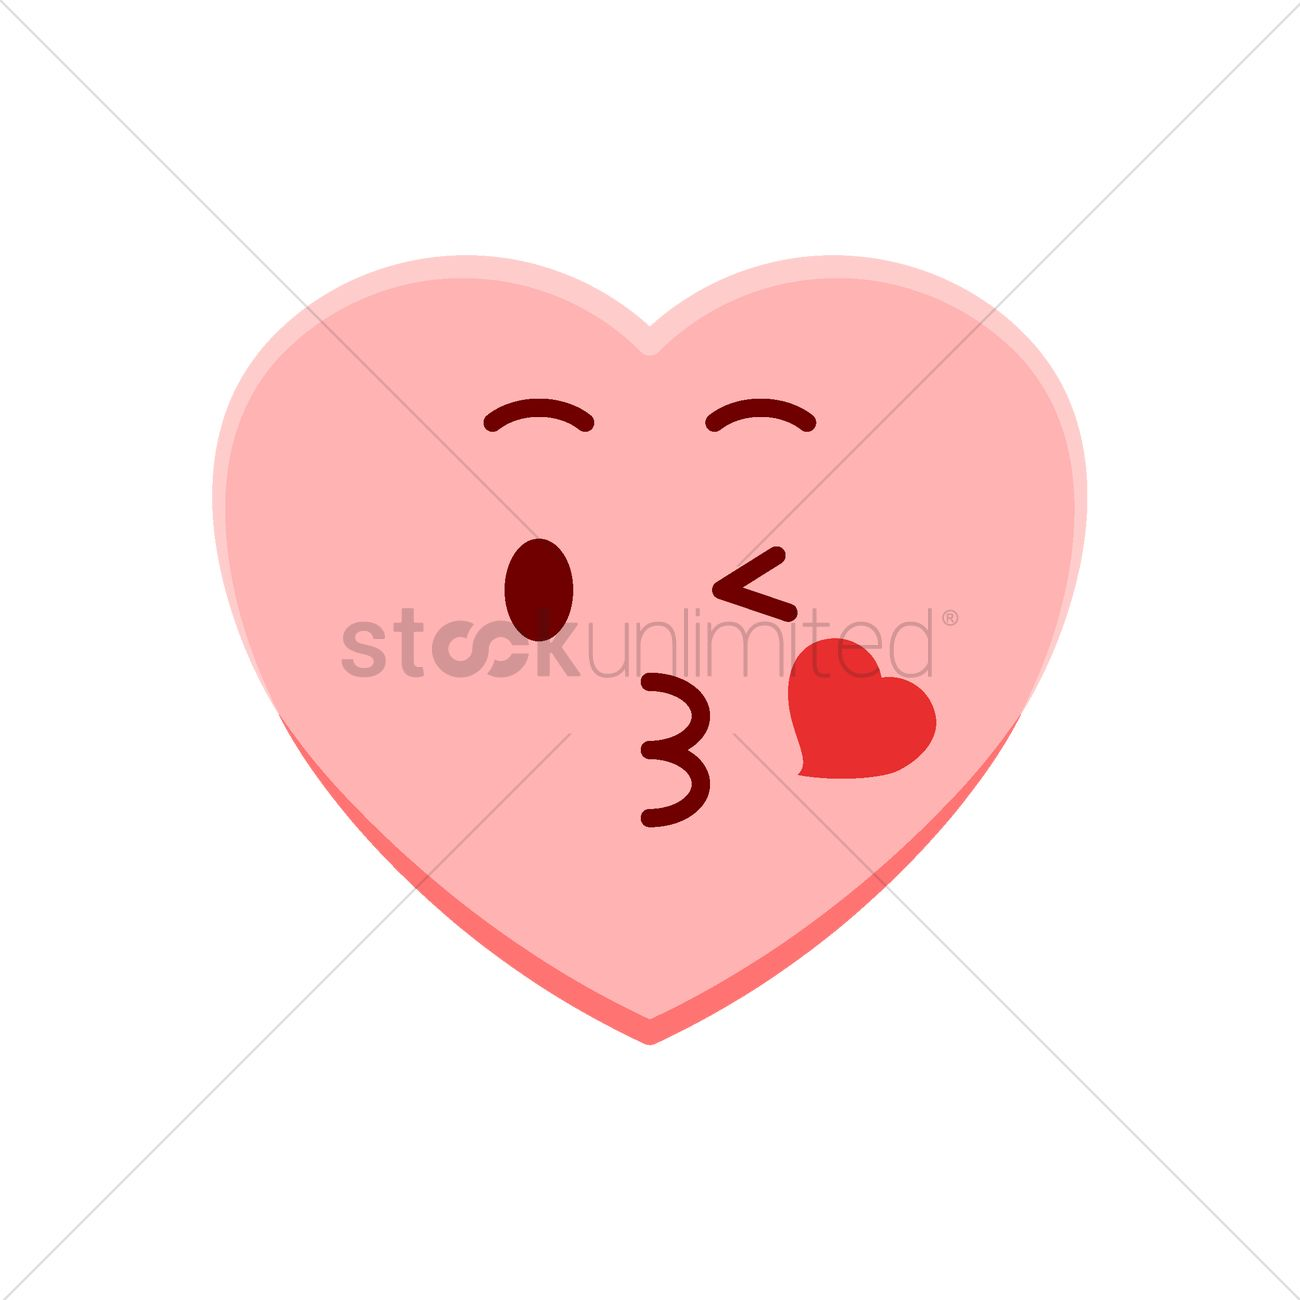 Heart Character Blowing A Kiss Vector Image 1977539 Stockunlimited